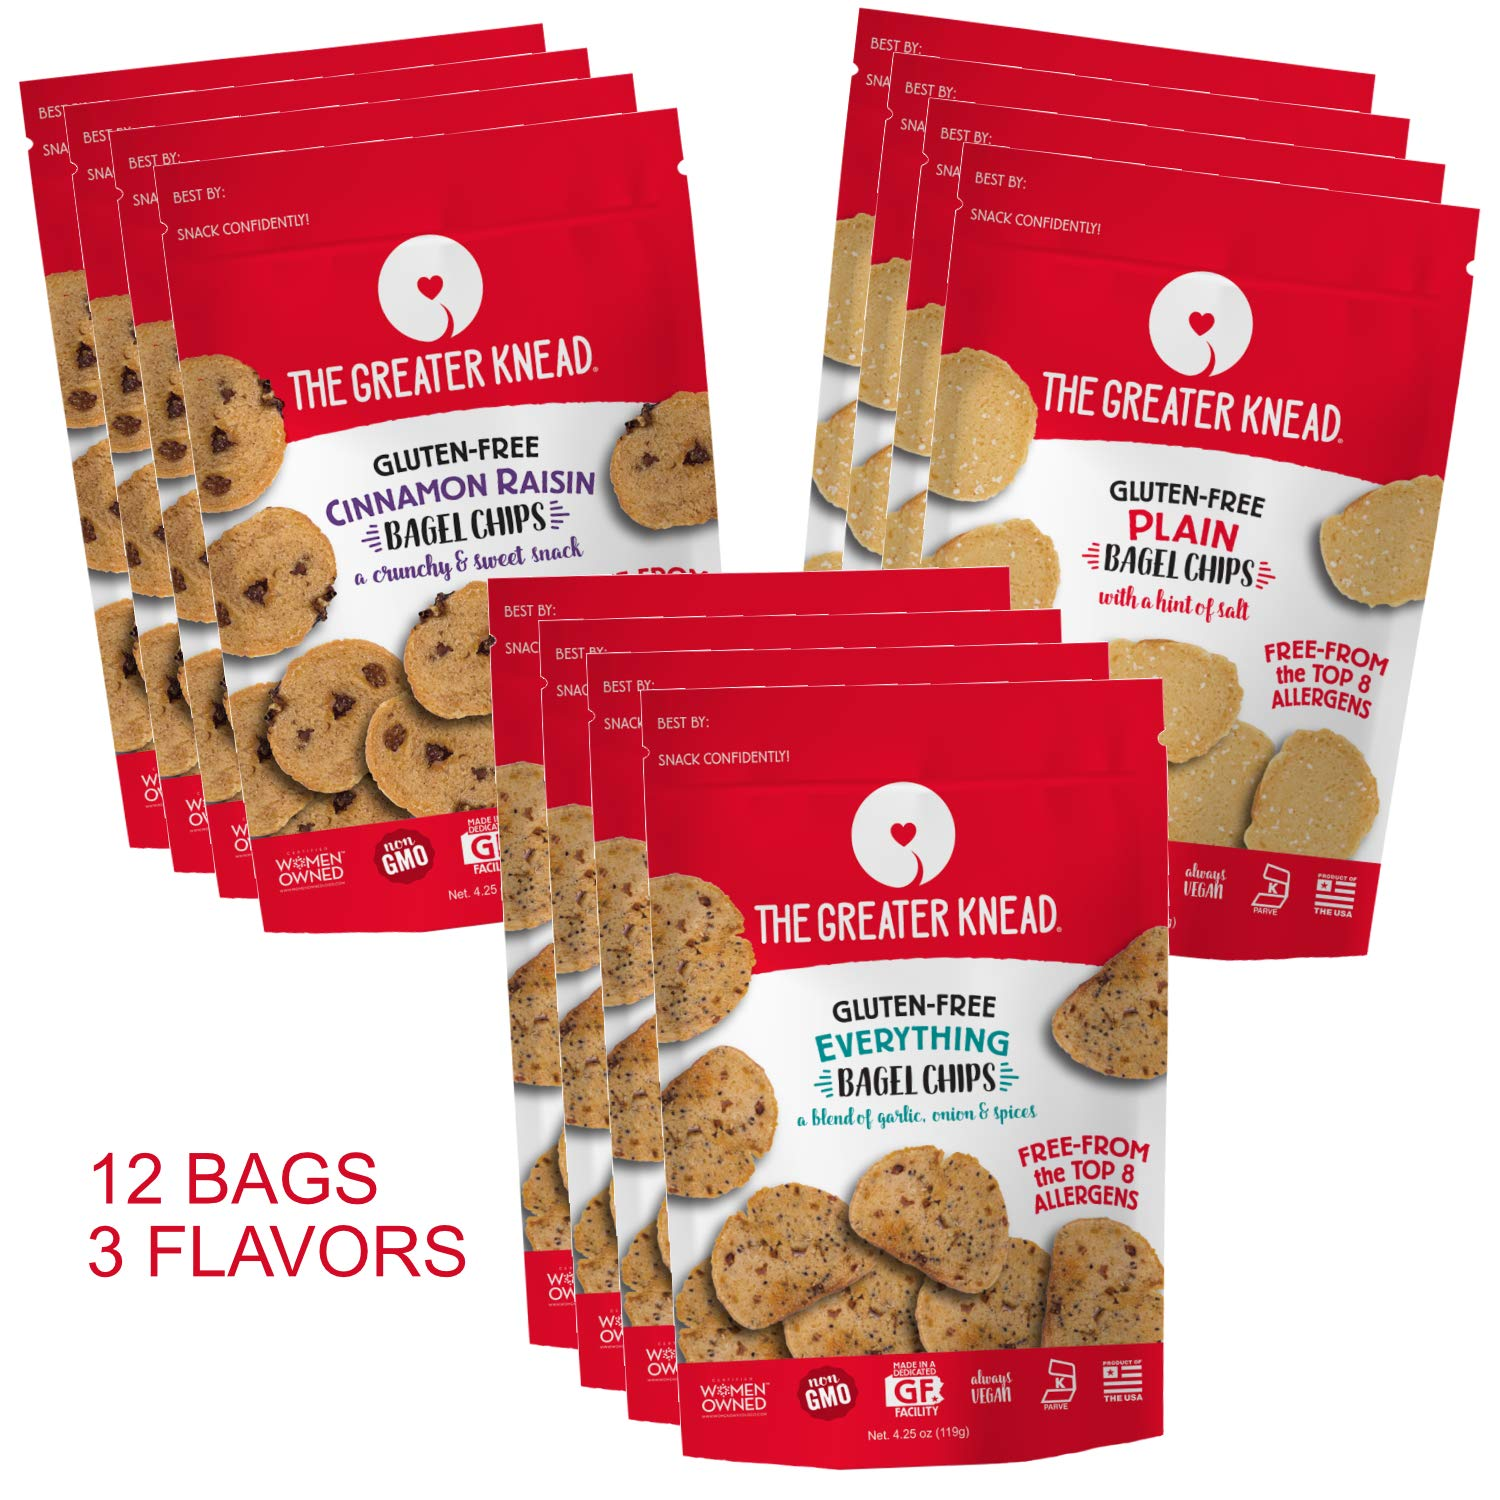 Greater Knead Gluten Free Bagel Chips - Vegan, non-GMO, Free of Wheat, Nuts, Soy, Peanuts, Tree Nuts - Combo bags with Plain, Cinnamon Raisin, and Everything (12 bags) by The Greater Knead